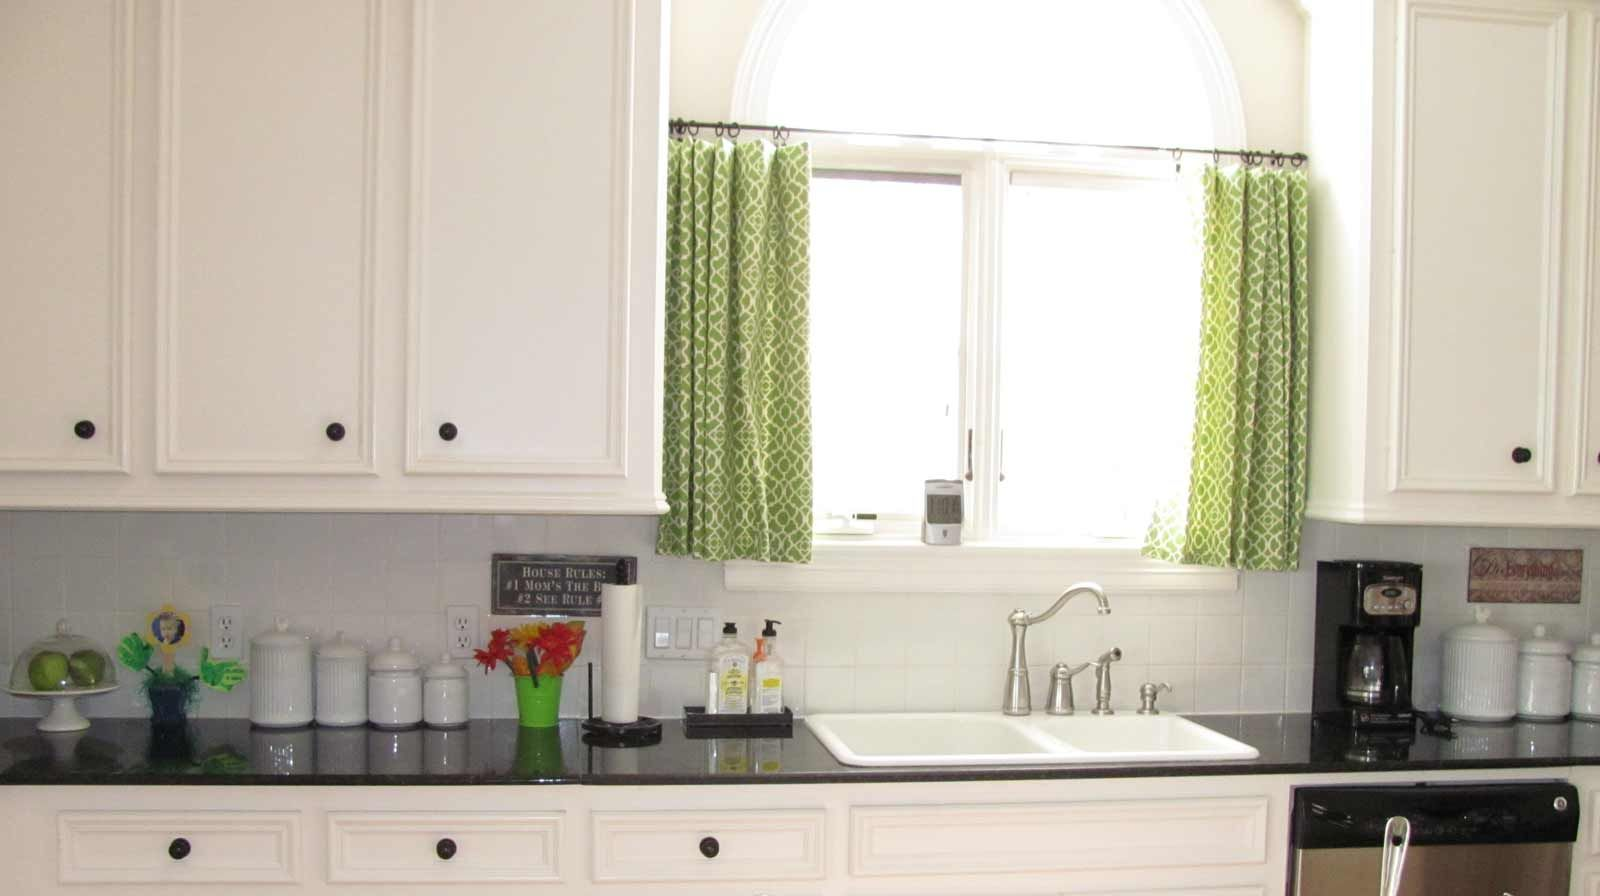 10+ images about use café curtains for kitchen to renovate it on